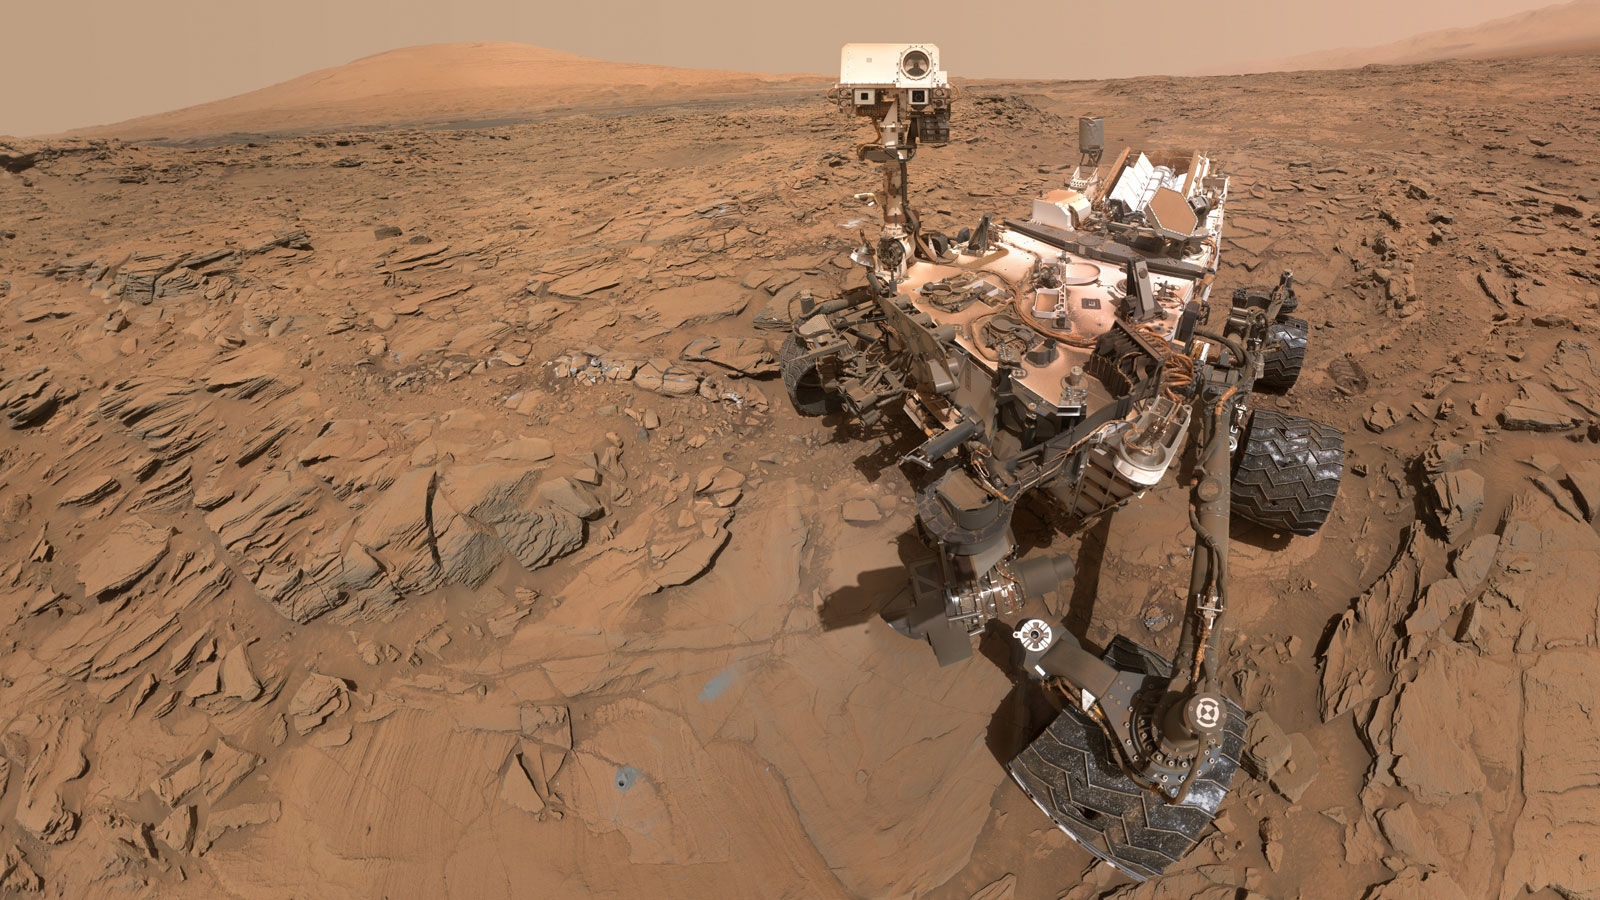 Mars Rover Curiosity in 'Safe Mode' After Glitch